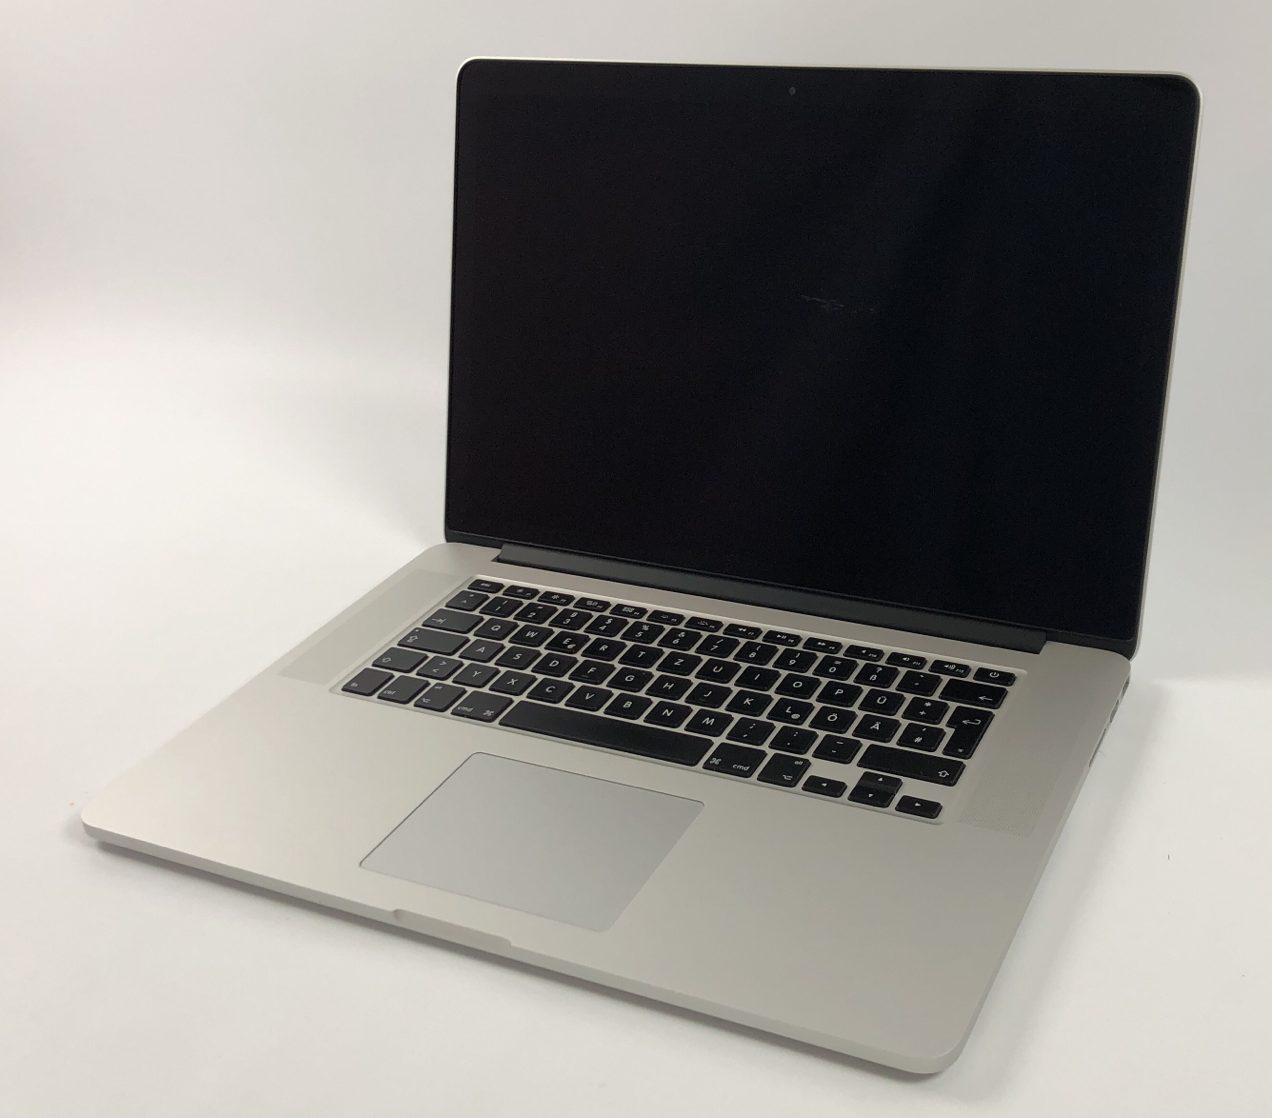 "MacBook Pro Retina 15"" Mid 2014 (Intel Quad-Core i7 2.2 GHz 16 GB RAM 512 GB SSD), Intel Quad-Core i7 2.2 GHz, 16 GB RAM, 512 GB SSD, Bild 1"